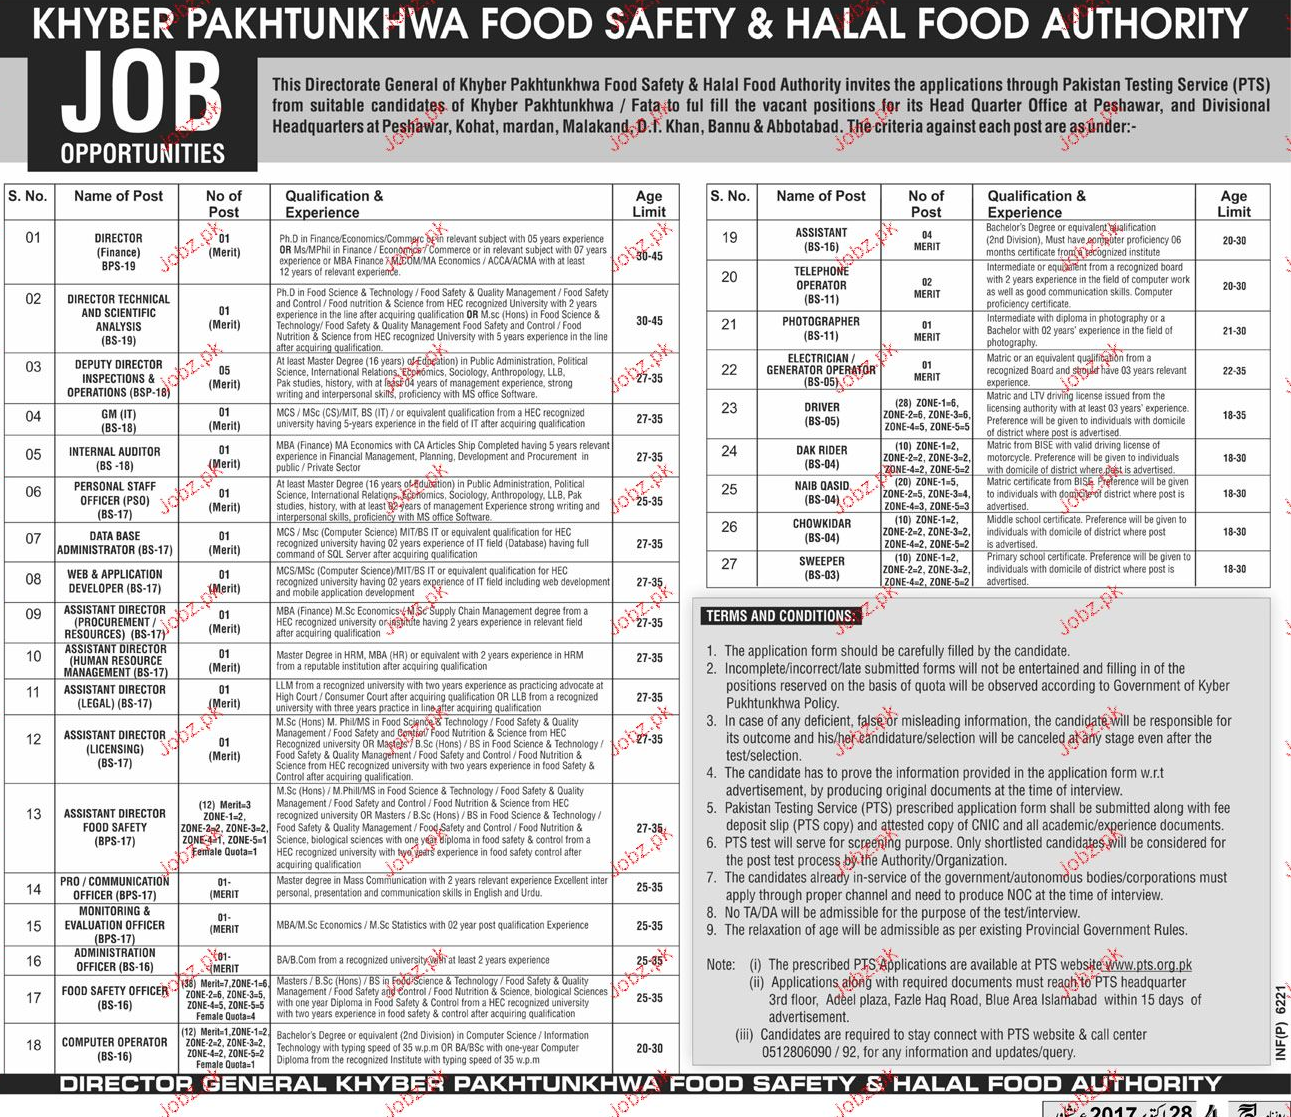 Khyber Pakhtunkhwa Food Safety and Halal Food Authority Jobs